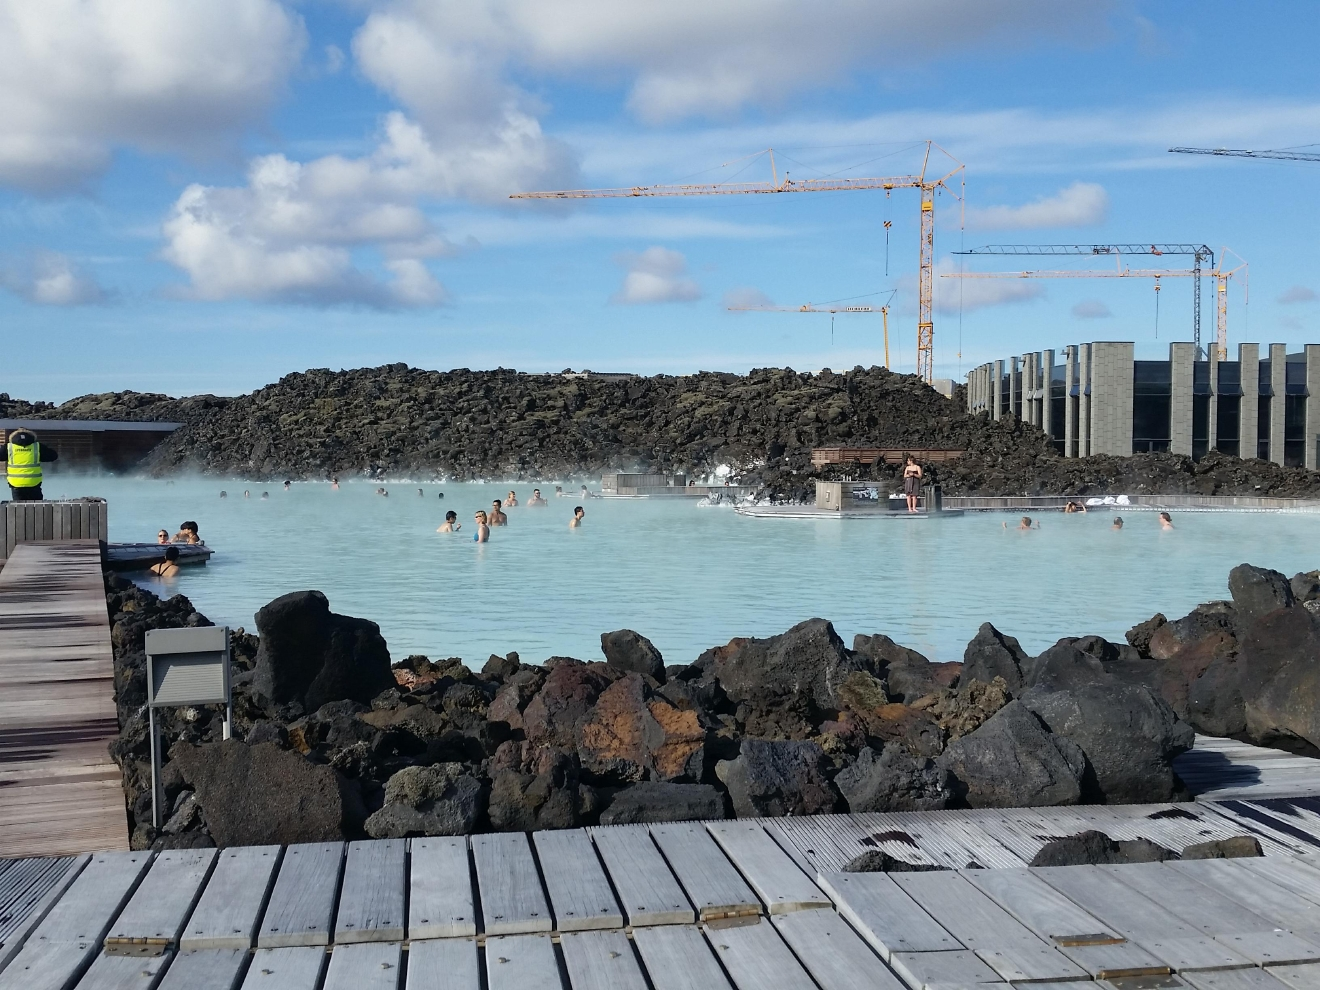 The Blue Lagoon officially opened in 1992, but the area dates back to 1976, when runoff water from the nearby Svartsengi geothermal power station formed a silica-rich pool. (Image: Kelly Magyarics)